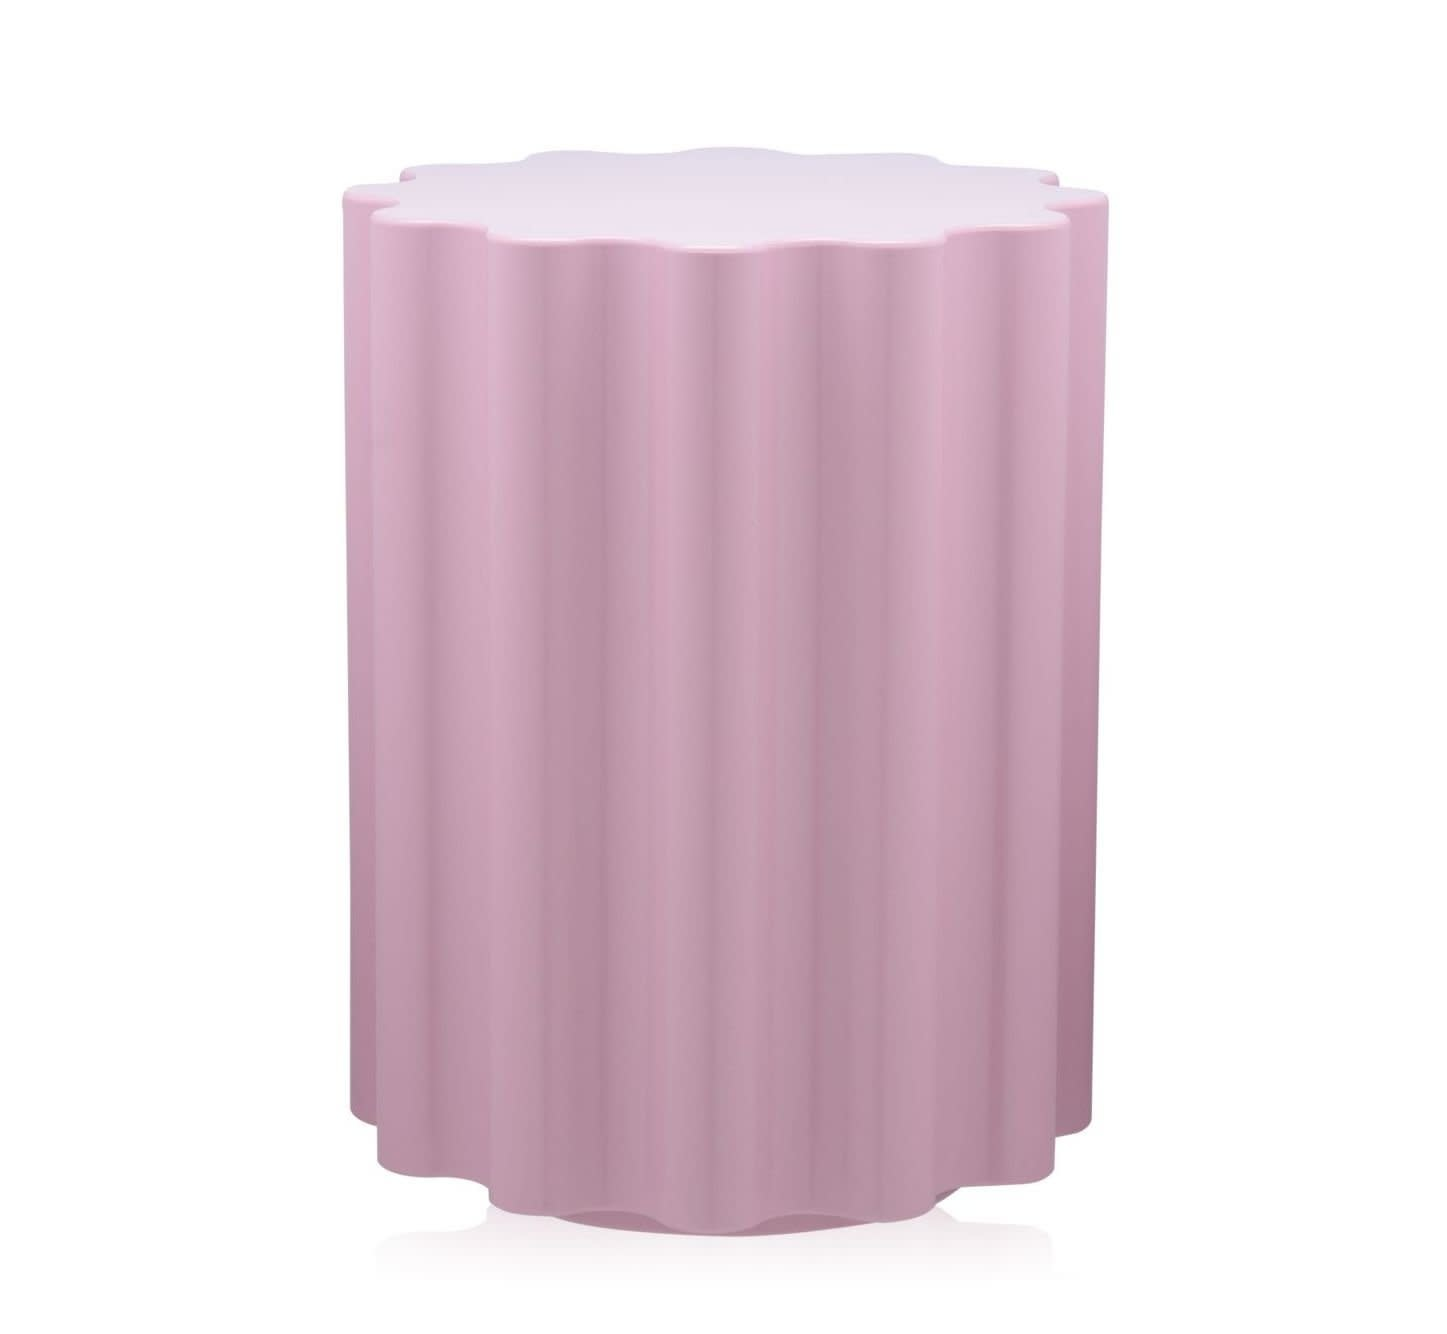 Kartell Colonna Stool/Side Table in Pink